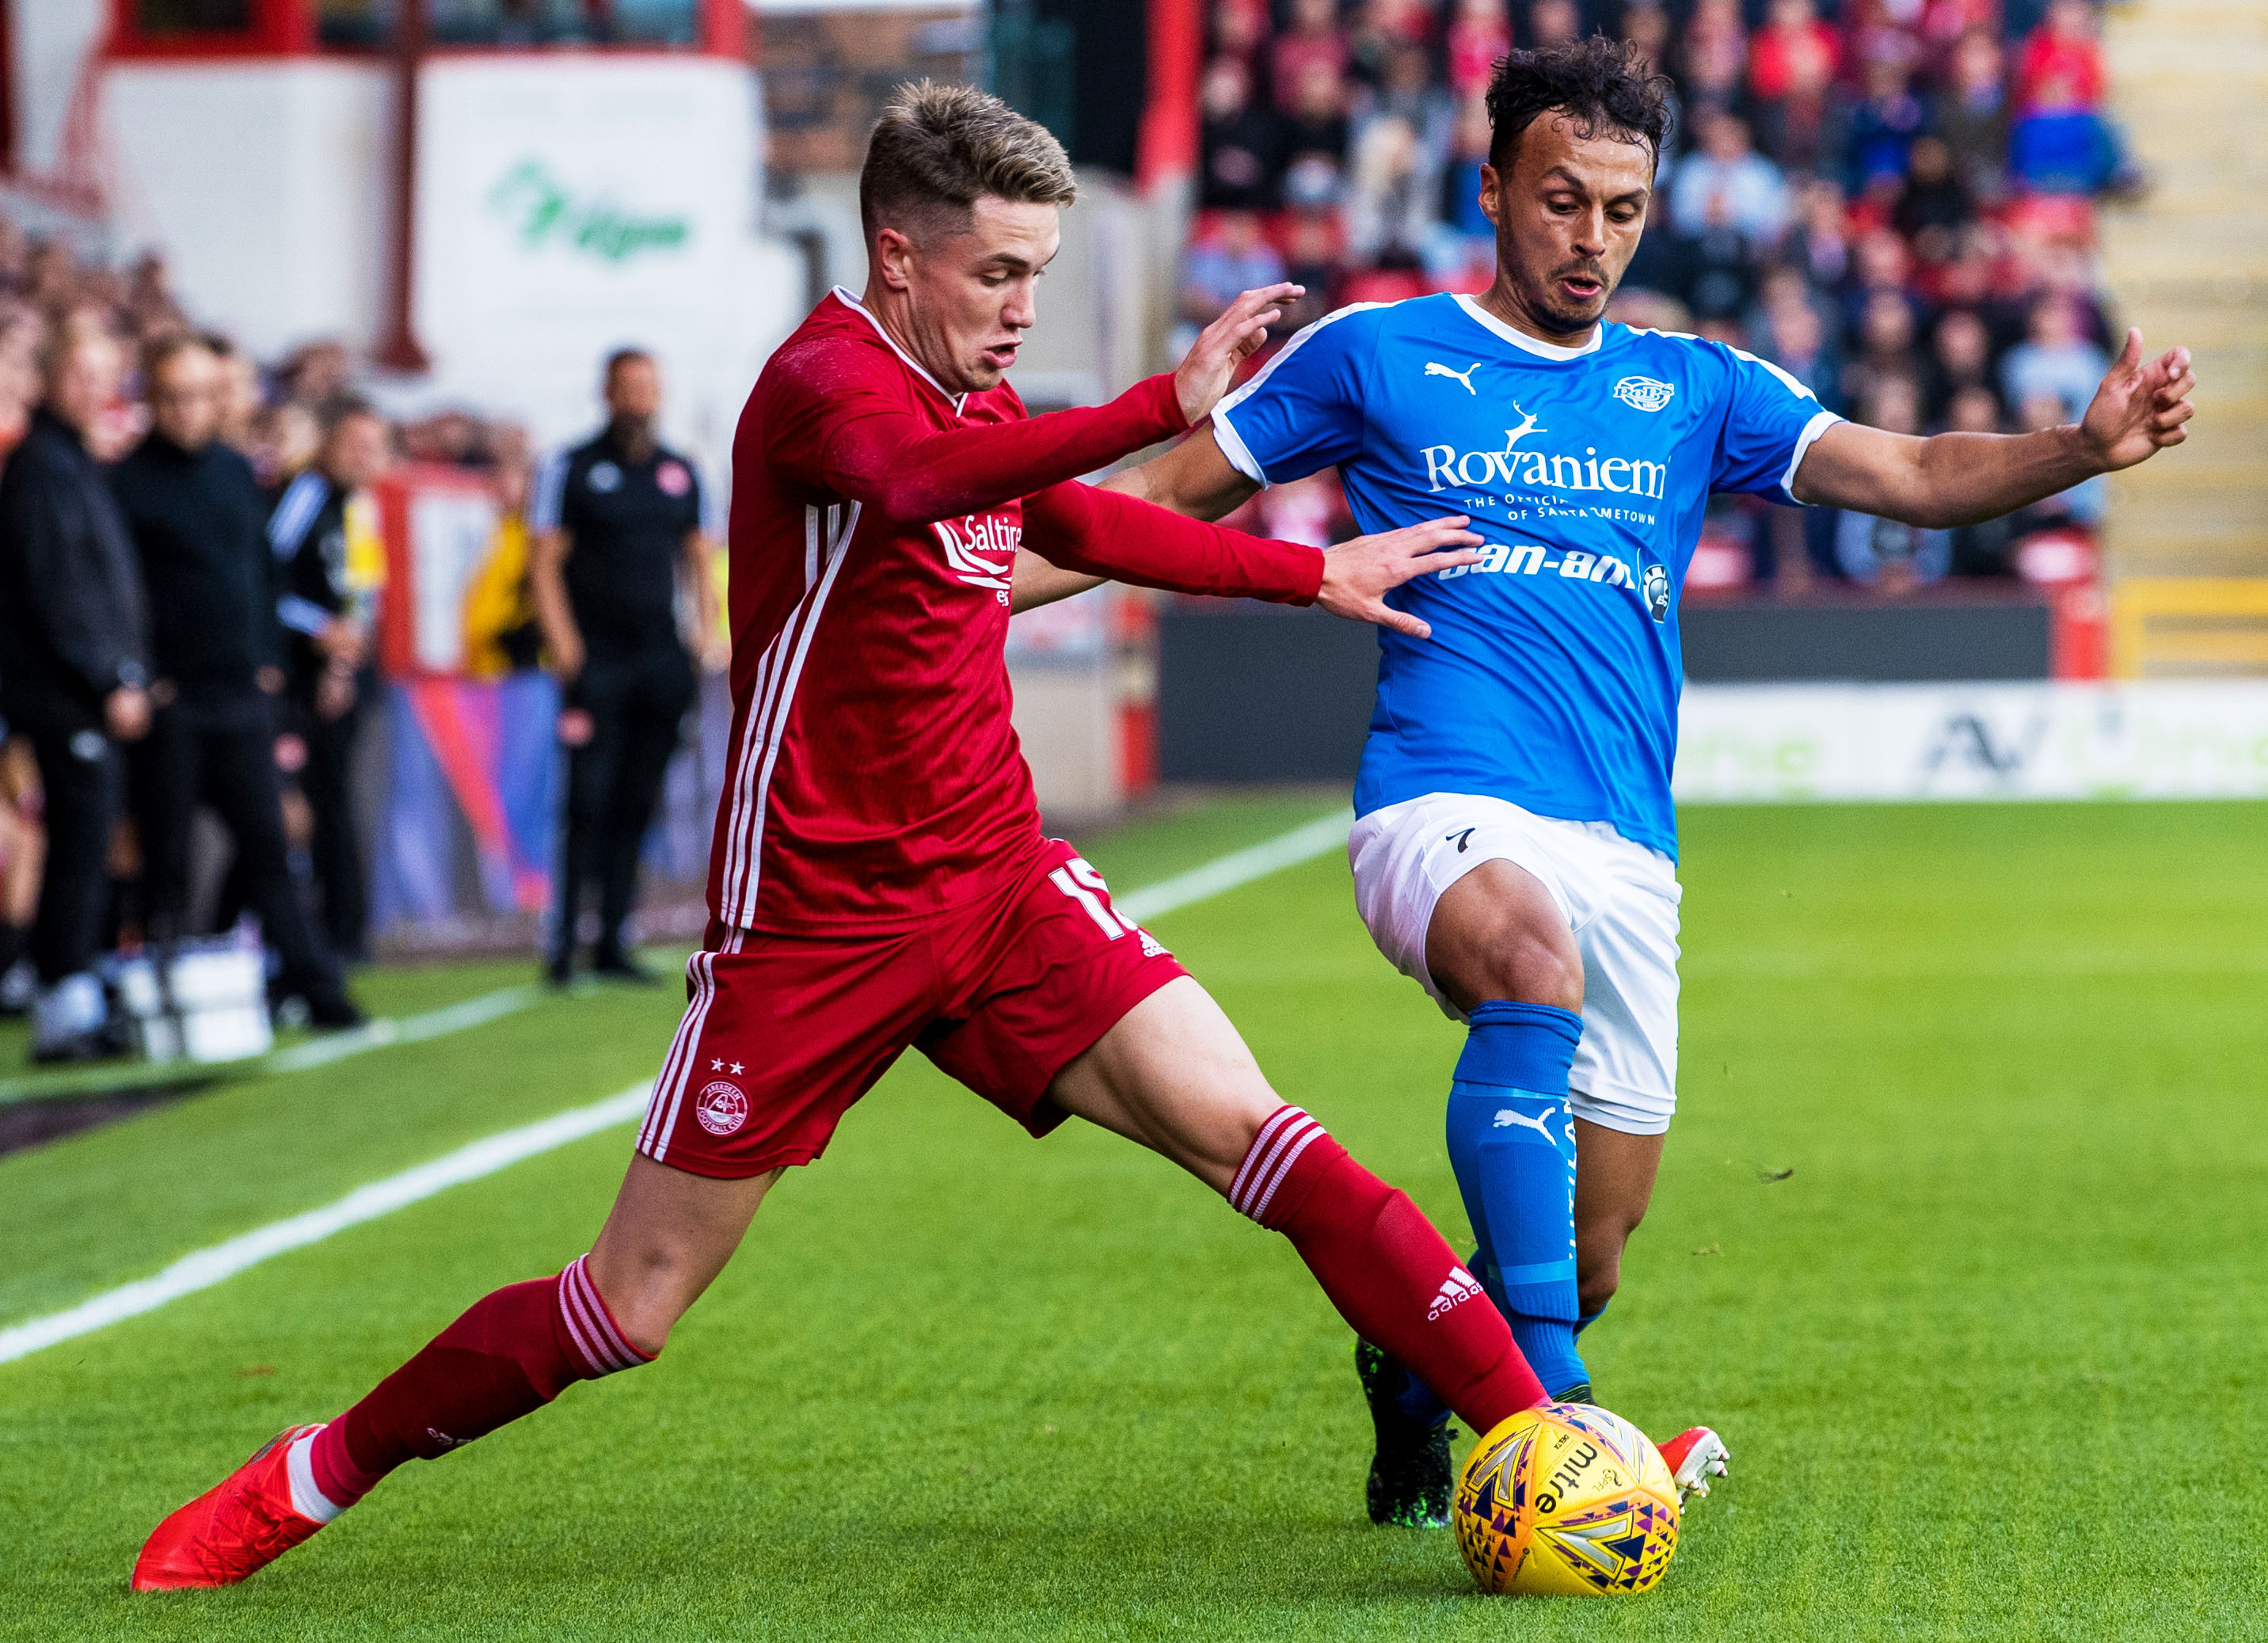 Aberdeen's Scott Wright, left, in action with RoPS' Youness Rahimi.